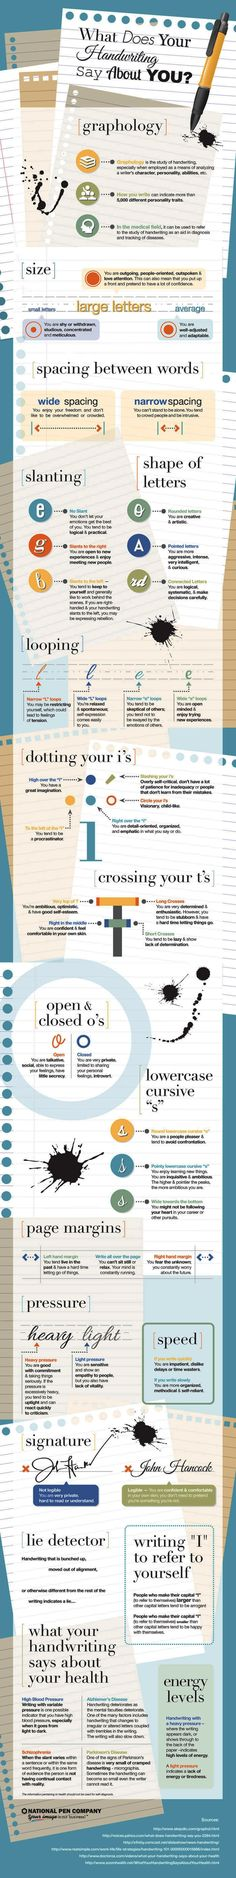 What does your handwriting say about your personality? #infographic #handwriting #handwritinganalysis